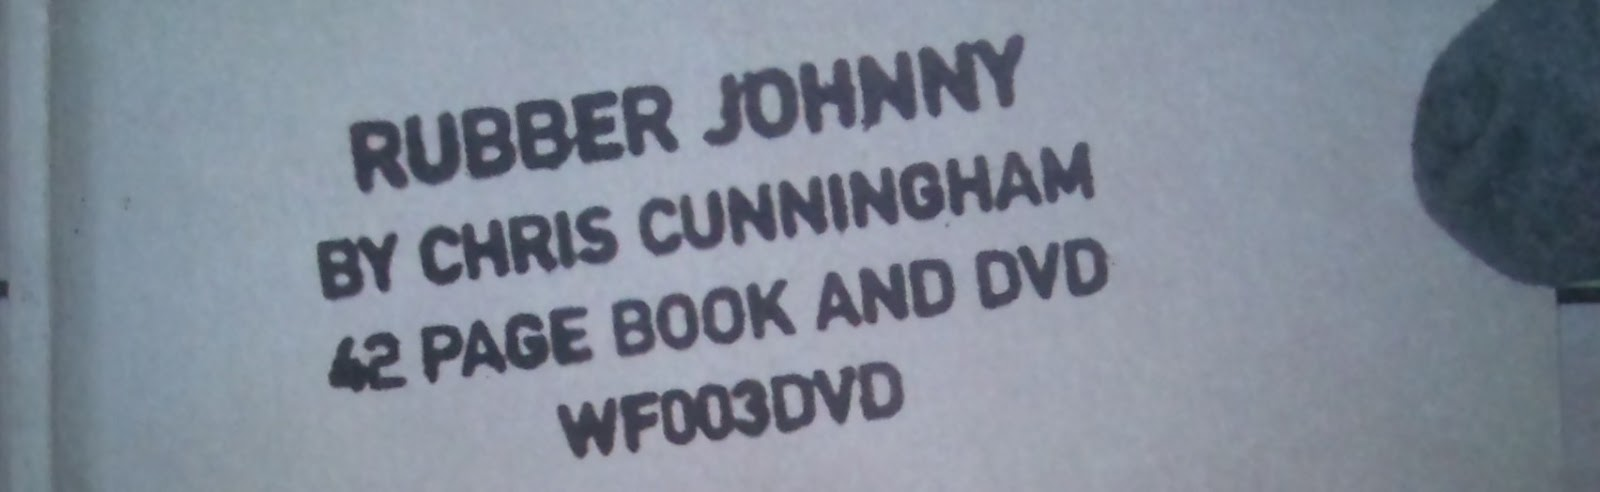 Spoiler Free Movie Sleuth 31 Days Of Hell Rubber Johnny